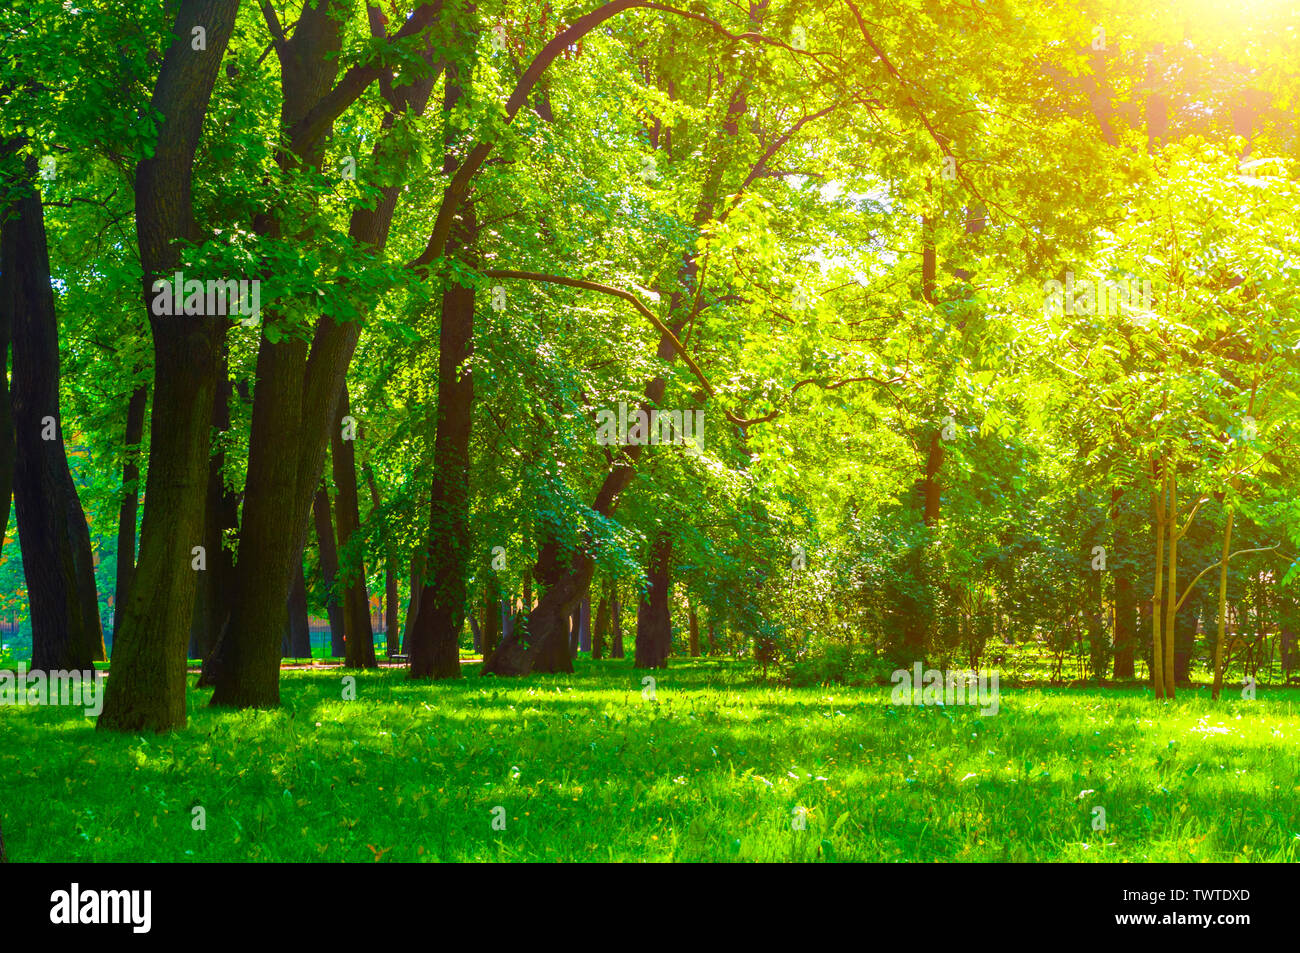 Summer park landscape in sunny weather - park trees and narrow path lit by soft sunlight. Summer park nature in sunny day, diffusion filter - Stock Image